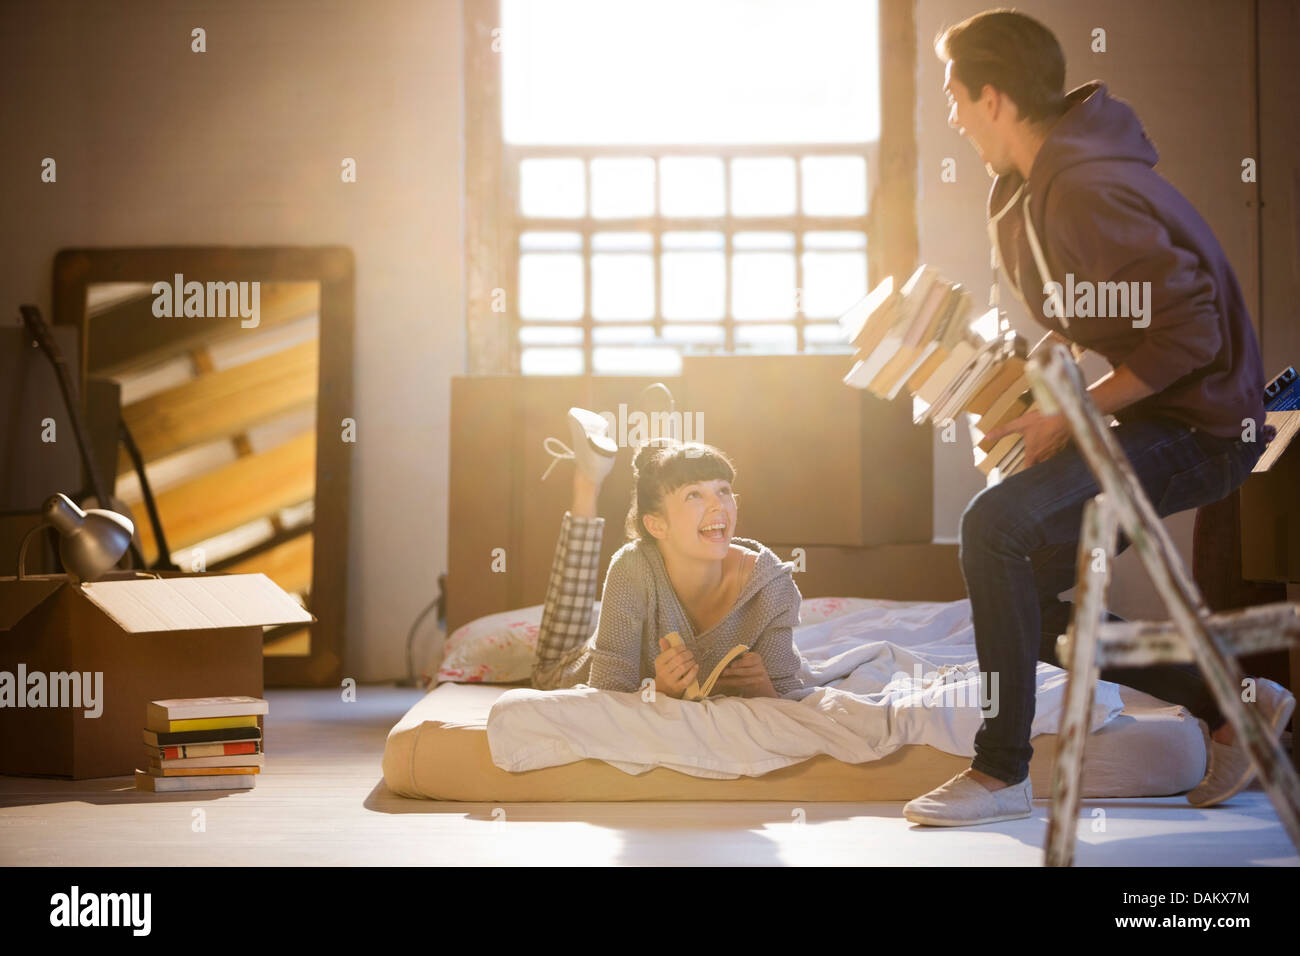 Couple relaxing in attic - Stock Image